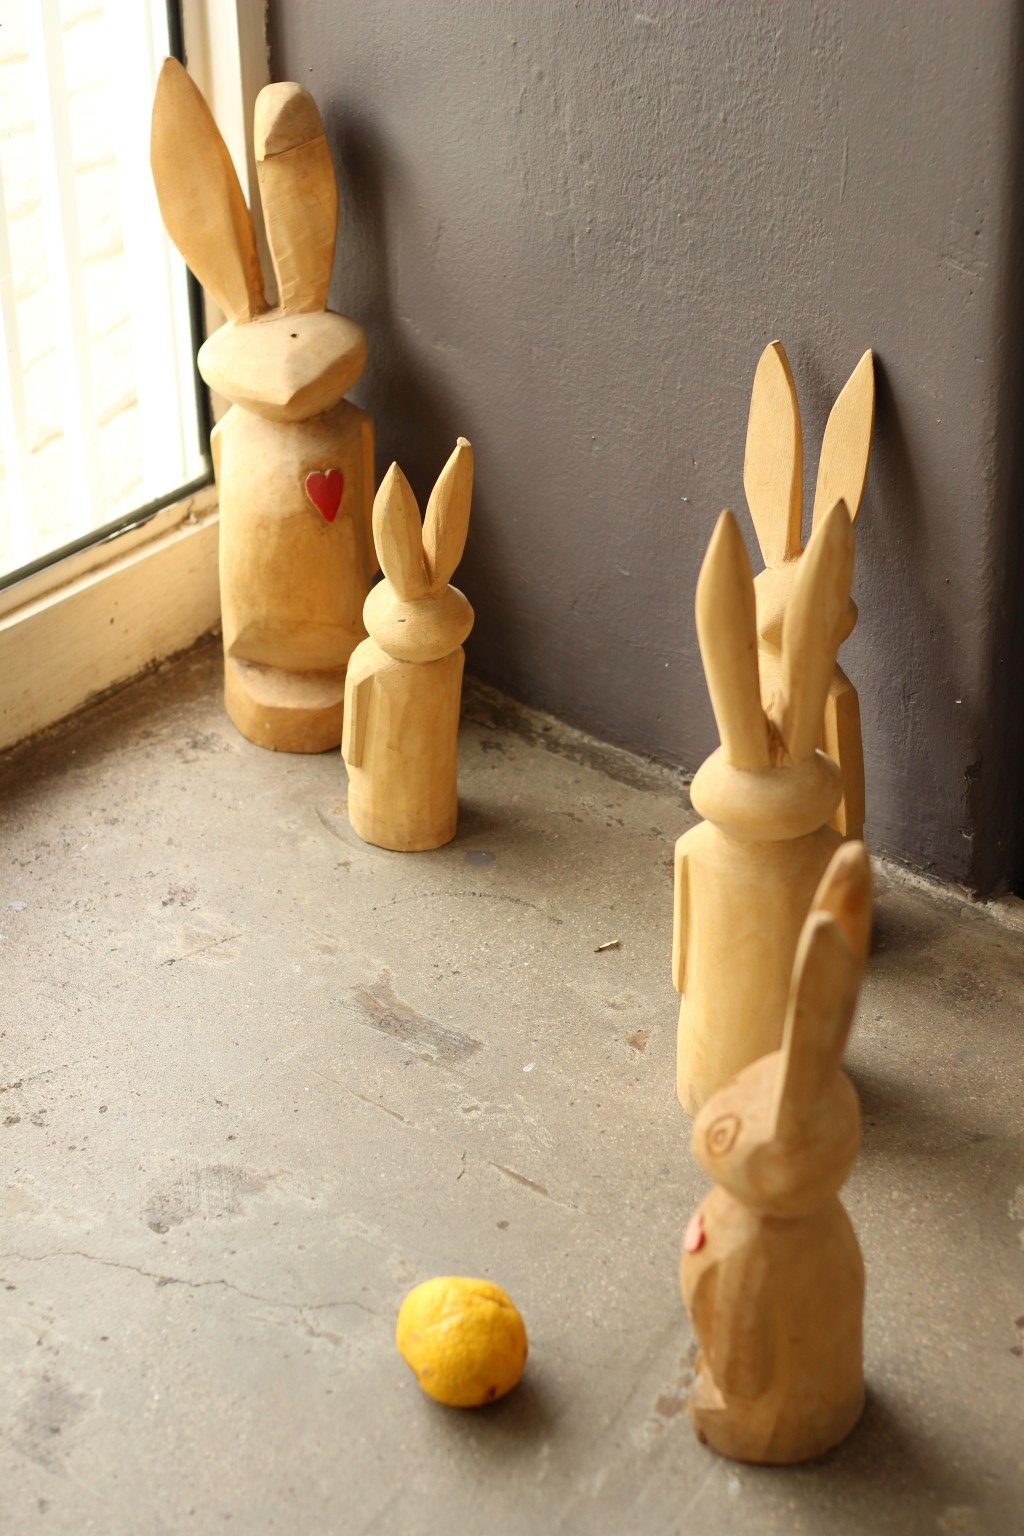 Wooden rabbits are part of the decor at Free Food